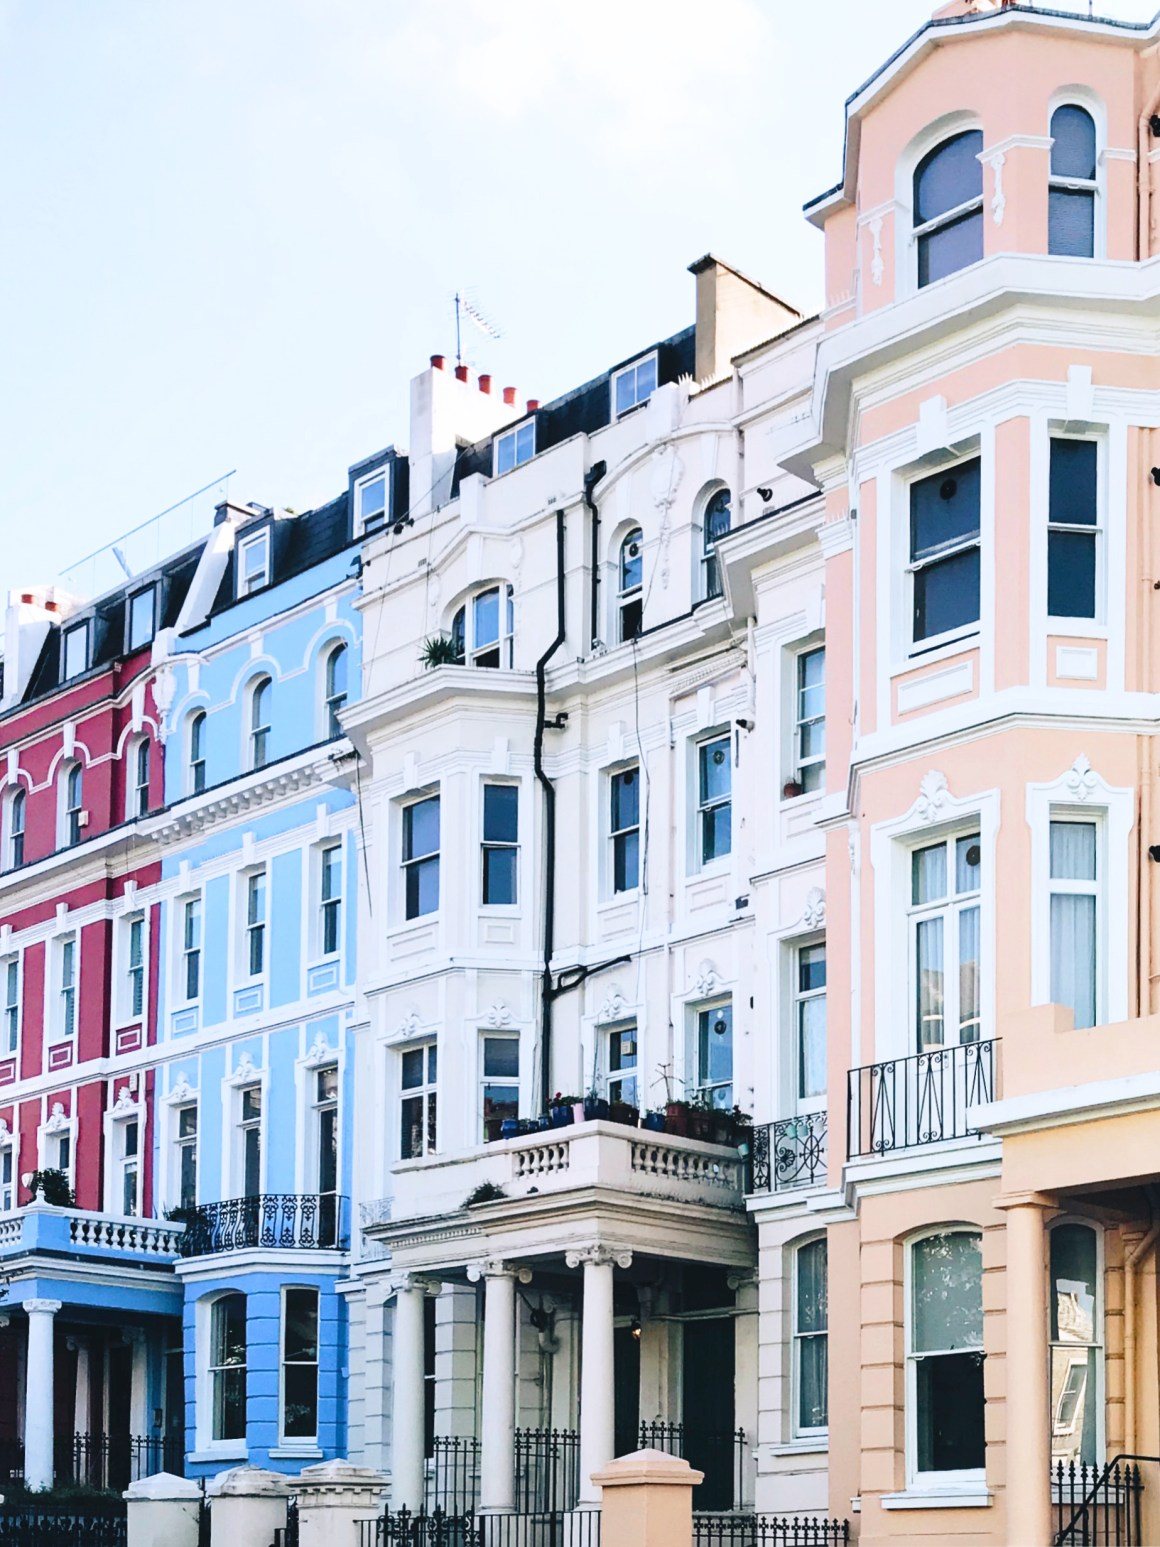 Colourful houses, London